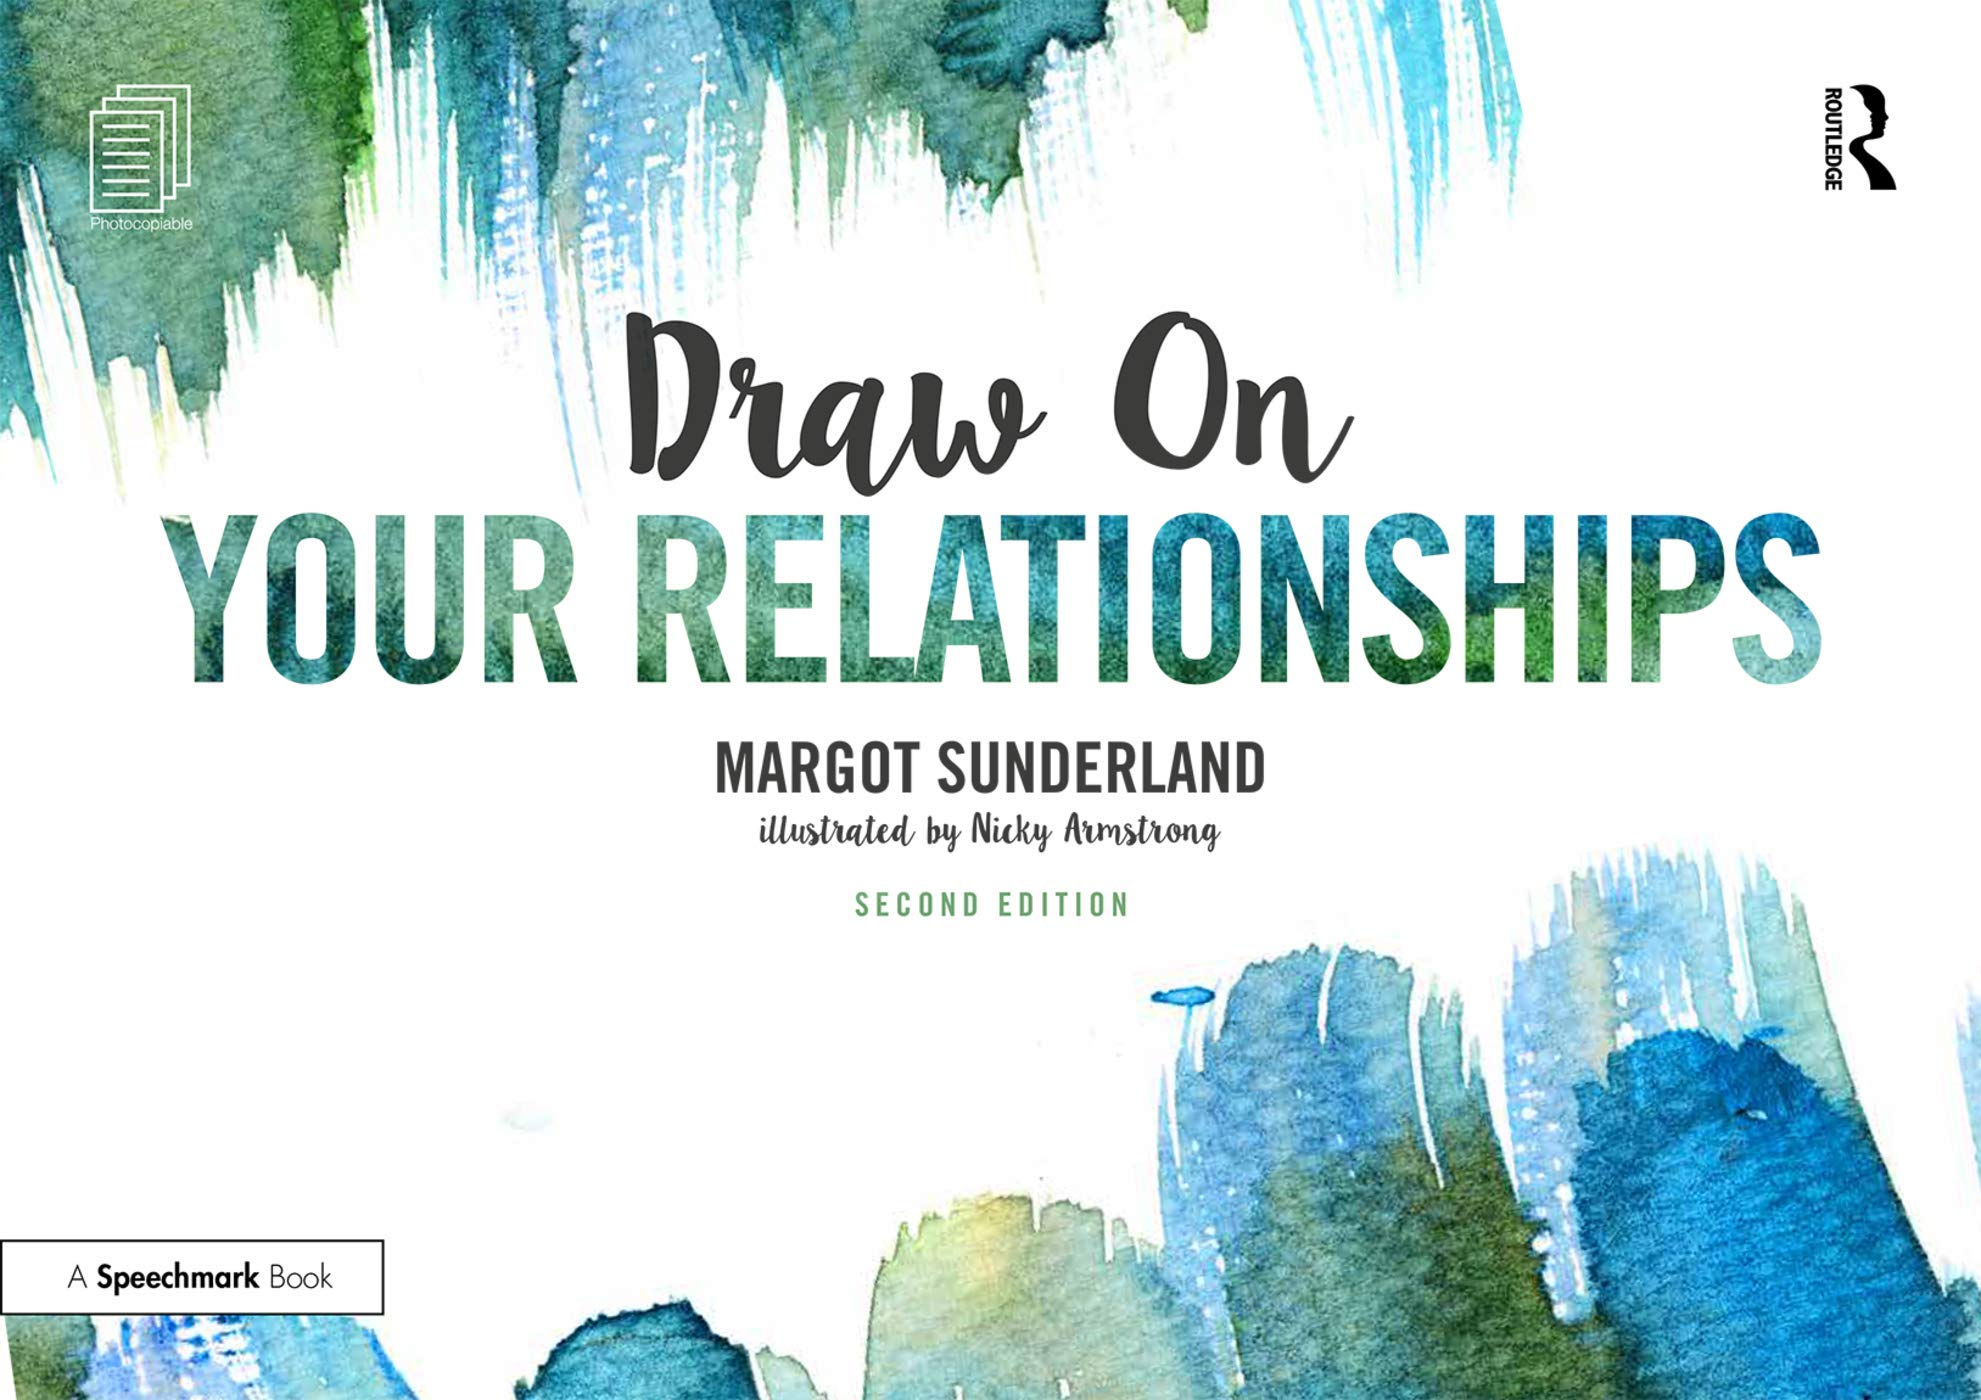 Image OfDraw On Your Relationships: Creative Ways To Explore, Understand And Work Through Important Relationship Issues